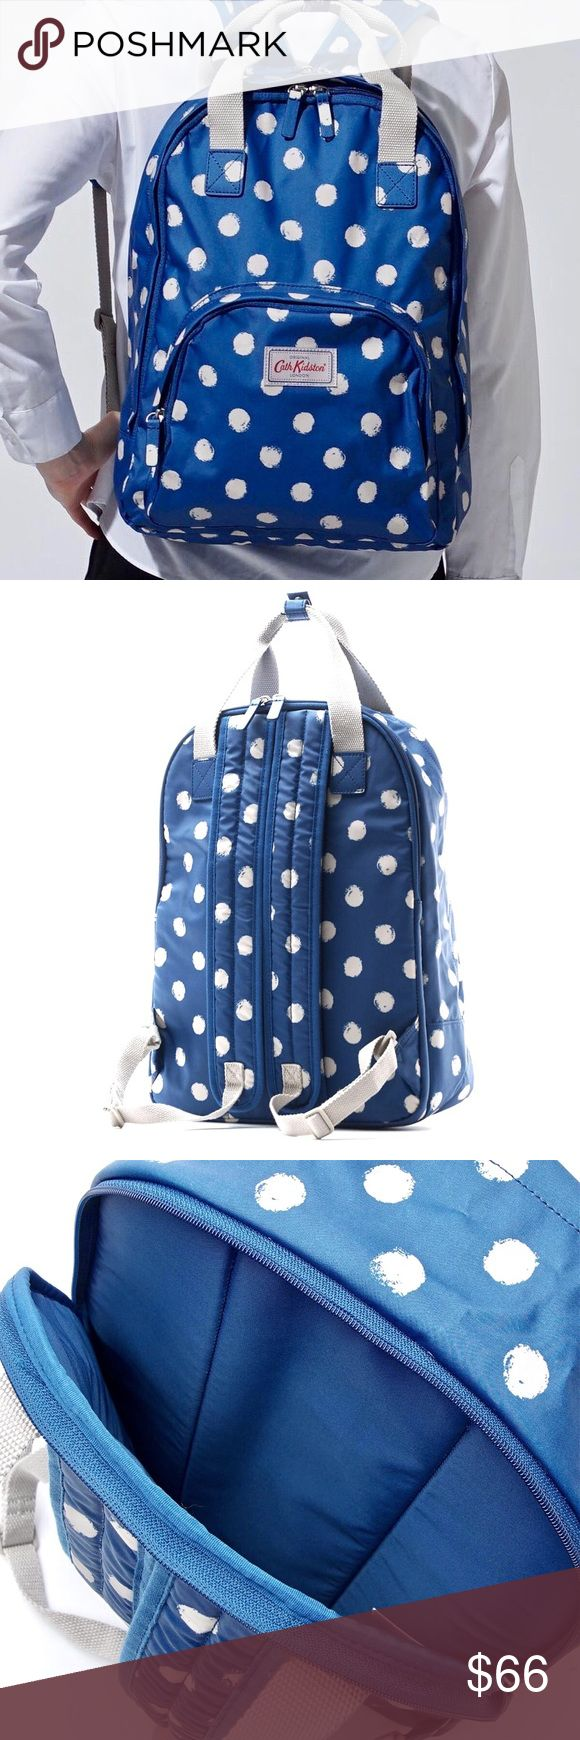 """Cath Kidston Multi Pocket Backpack Cath Kidston backpack 2WAY specifications """"Multi Pocket Smudge Spot"""" The backpack characterized by the long steering wheel which can last like tote bag. I use the material with cushion characteristics for the back compartment. Marine Compartment = 1 Outer pocket = 2 PVC coating cotton Polyester  PRICE FIRM, thank you :) Cath Kidston Bags Backpacks"""